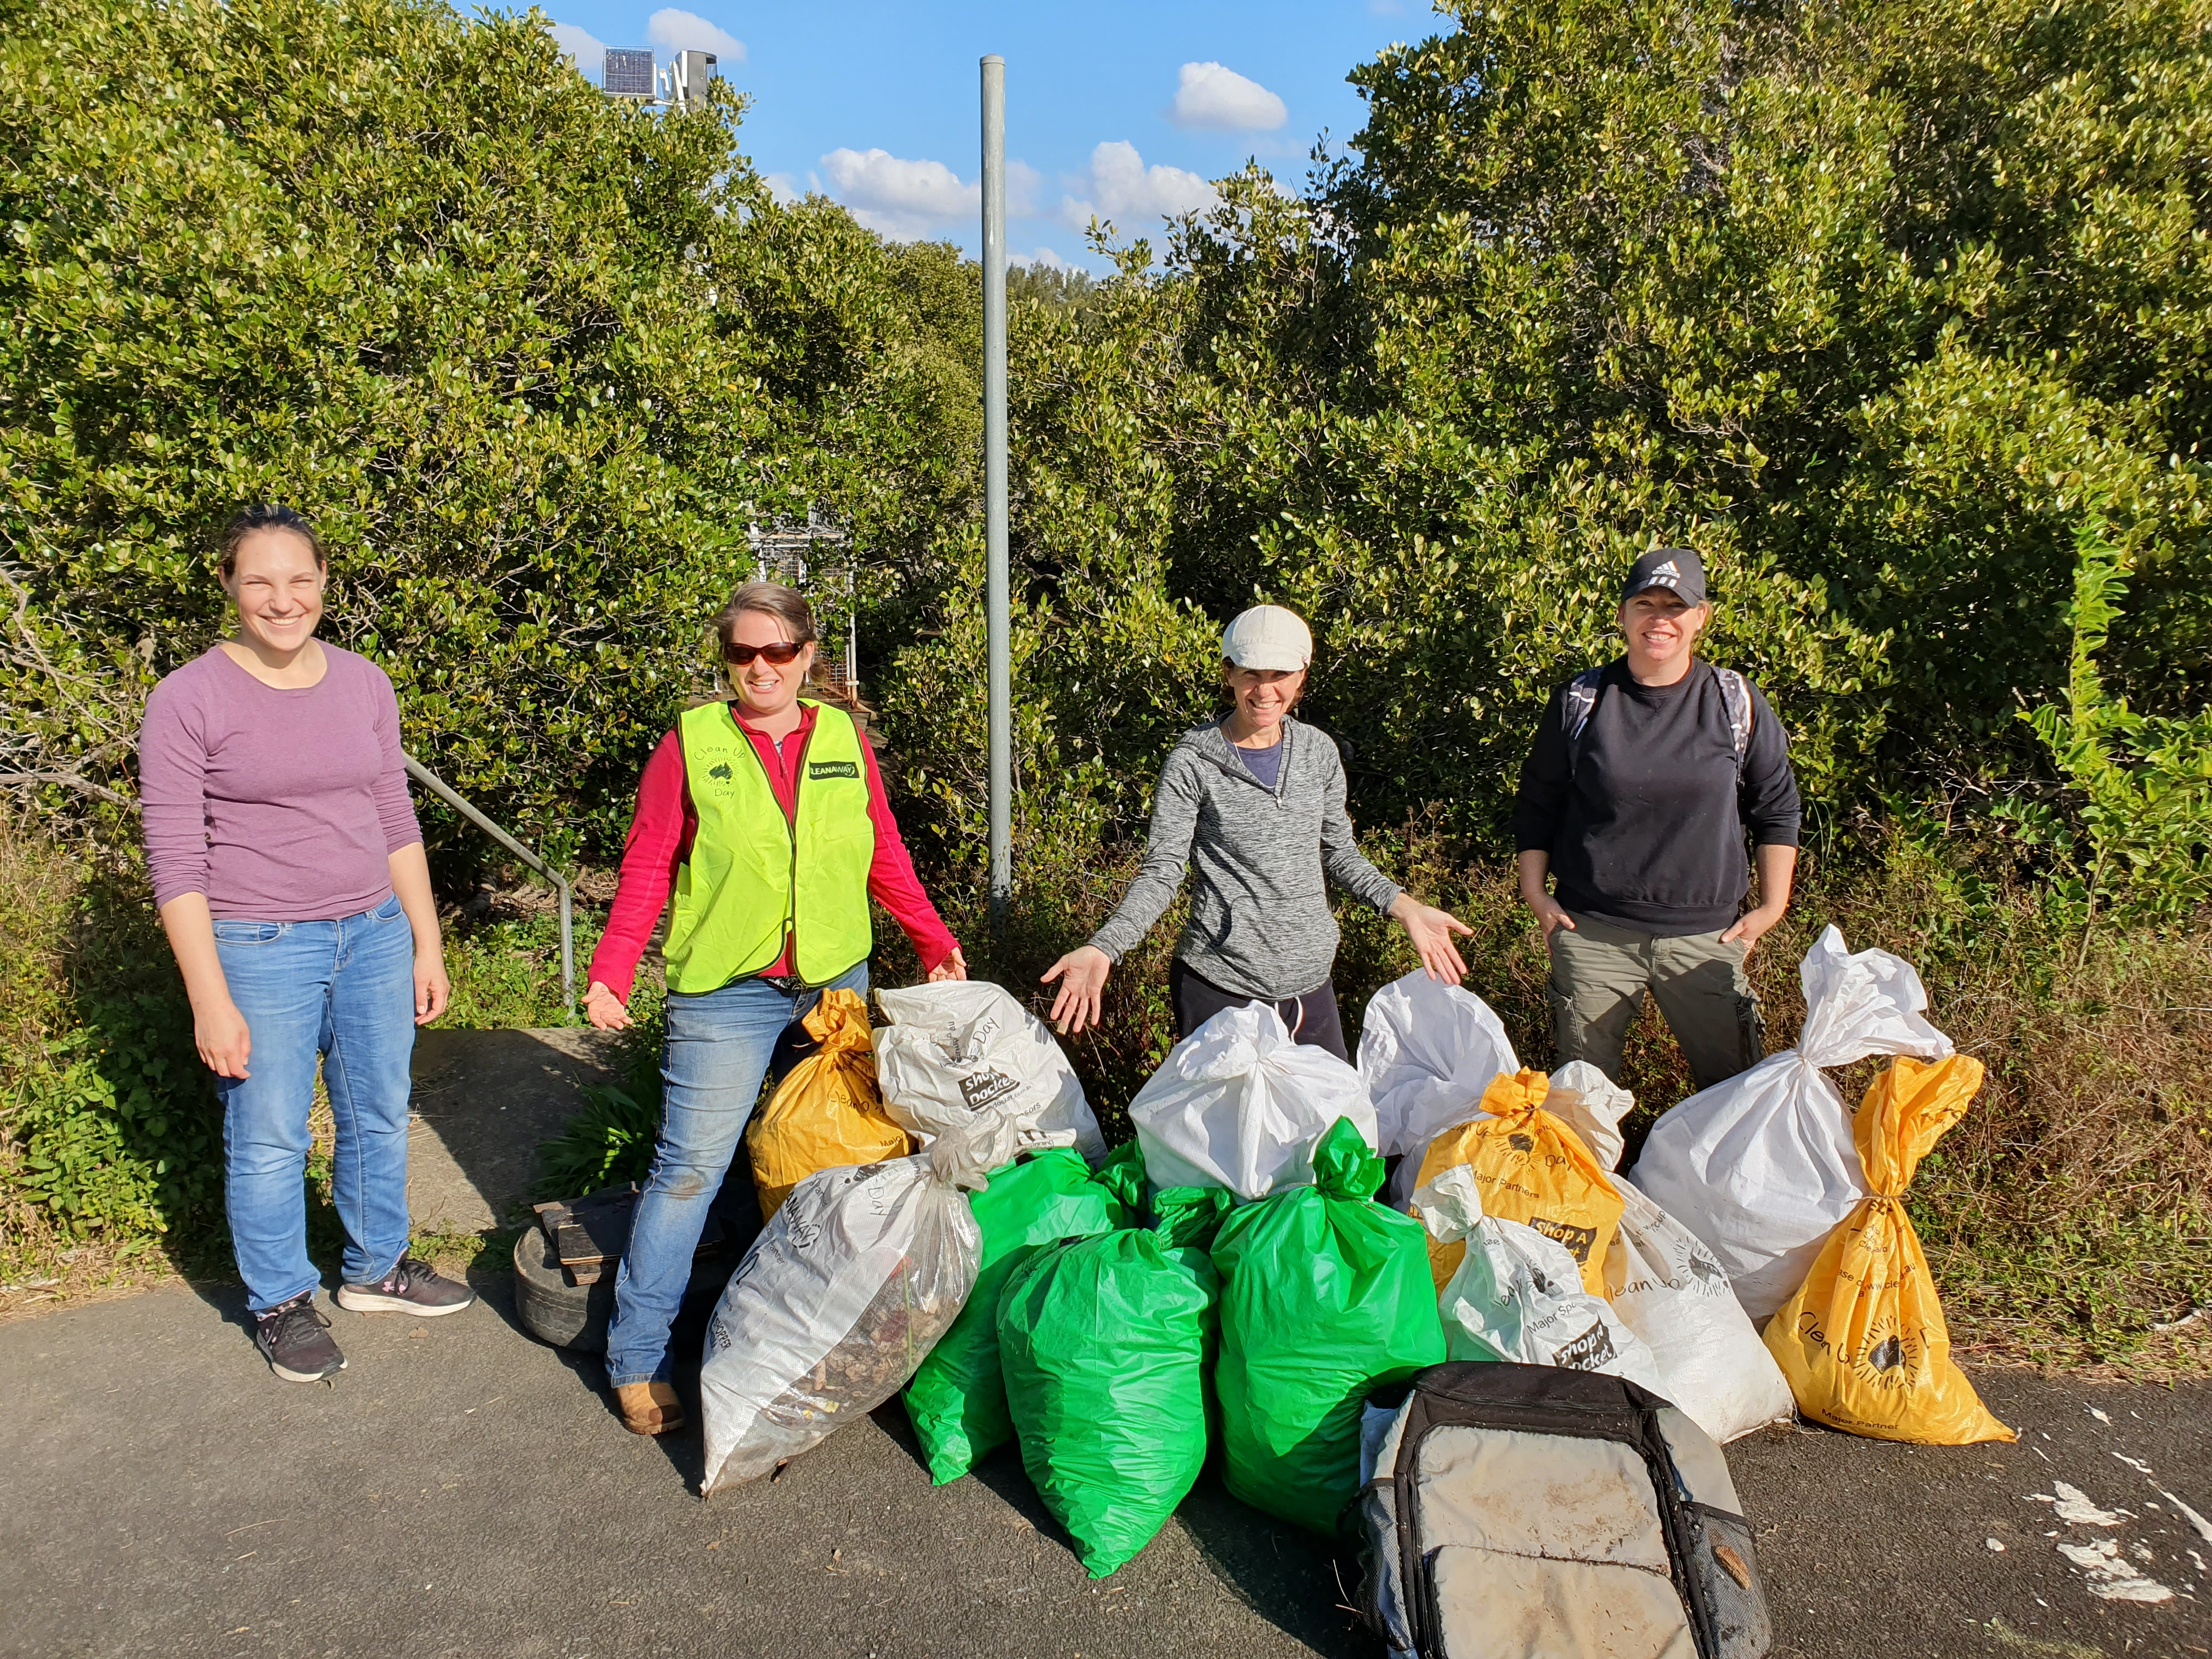 Volunteers with bags of rubbish at Clean Up Australia